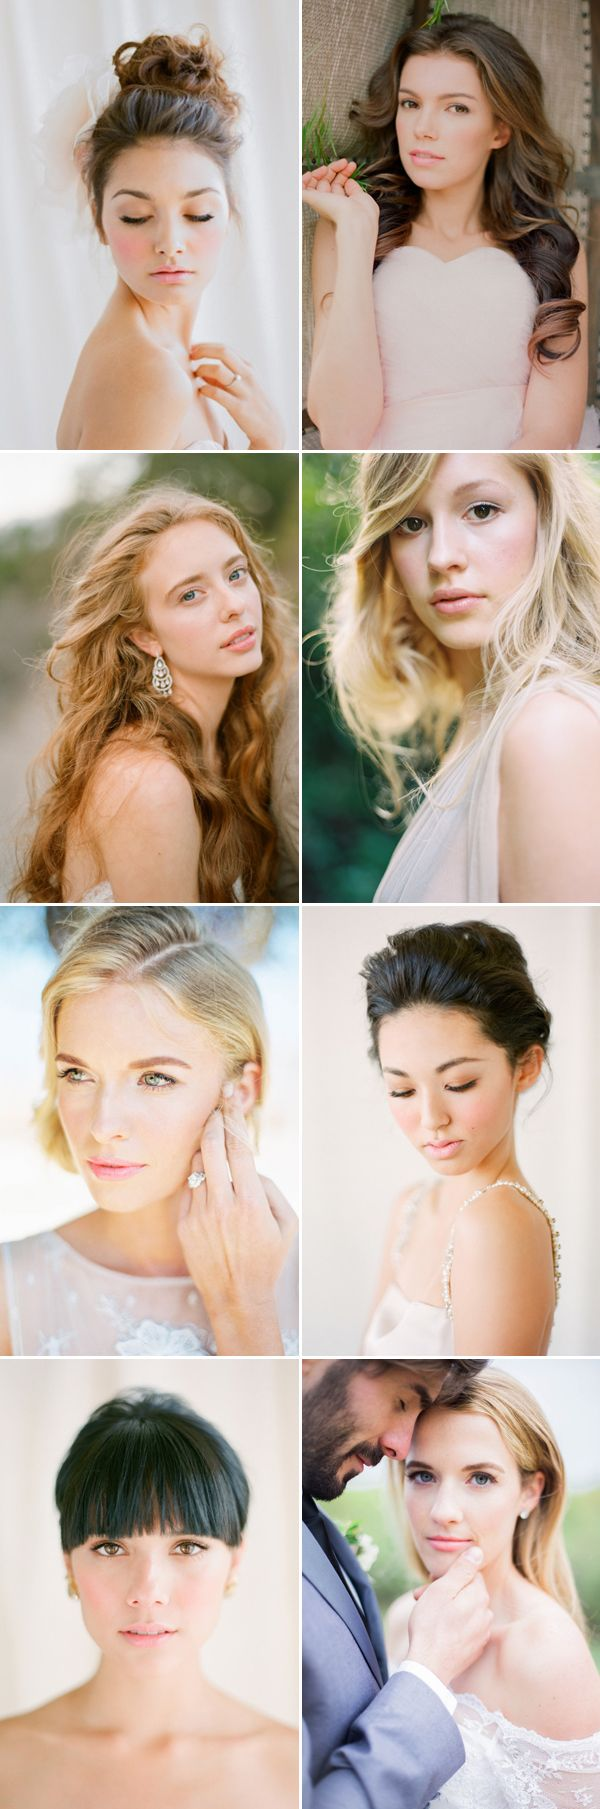 20 Effortlessly Stunning Natural Bridal Makeup Looks!